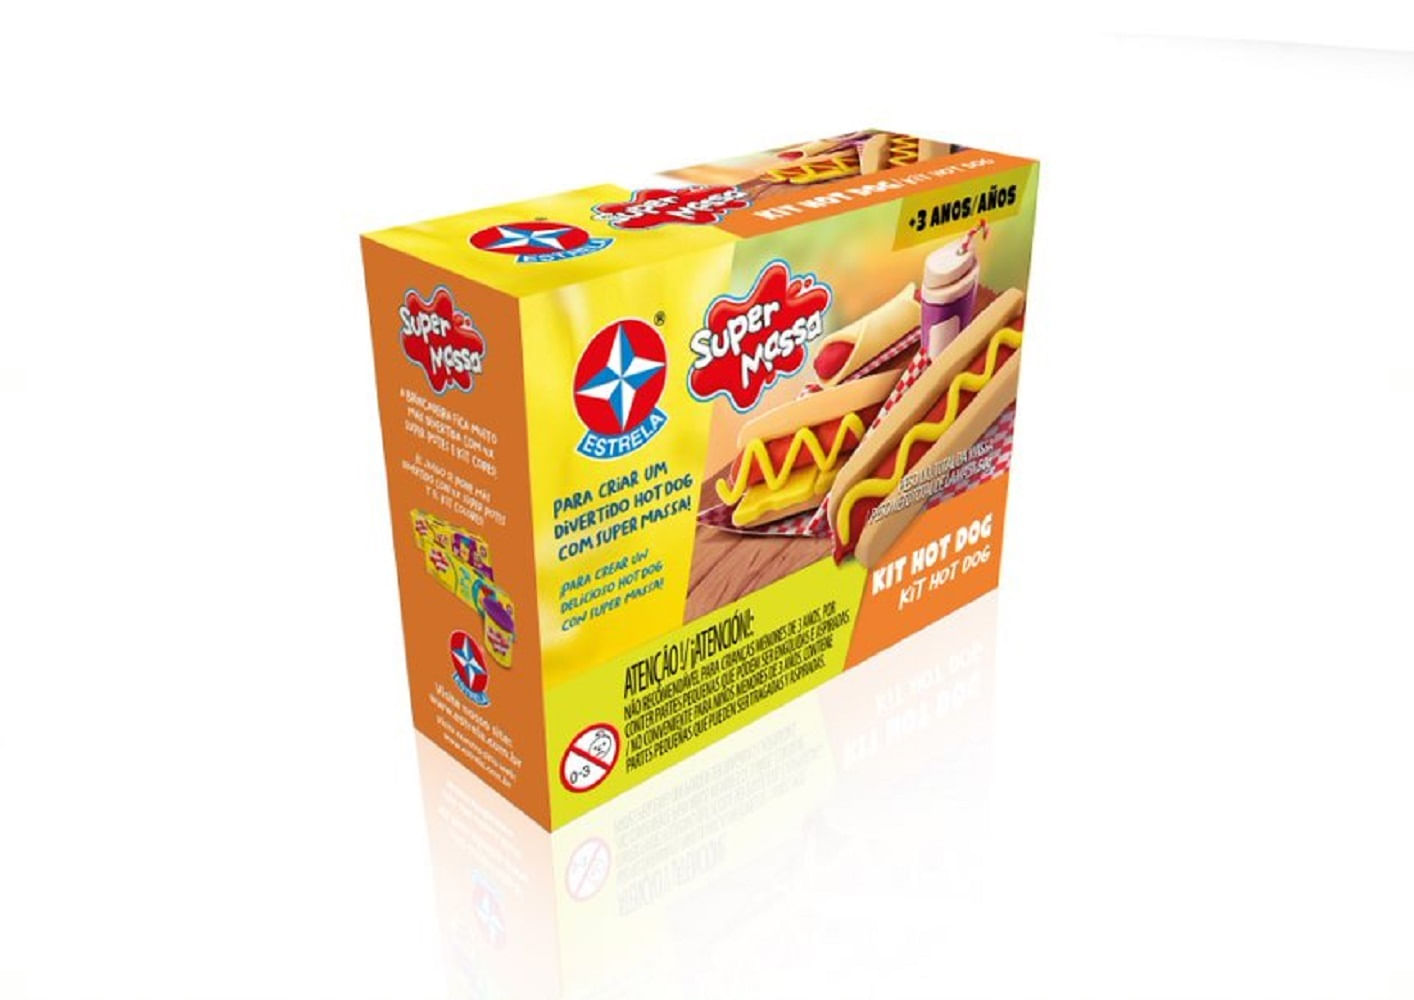 Massa De Modelar - Super Massa - Kit Hot Dog - Estrela